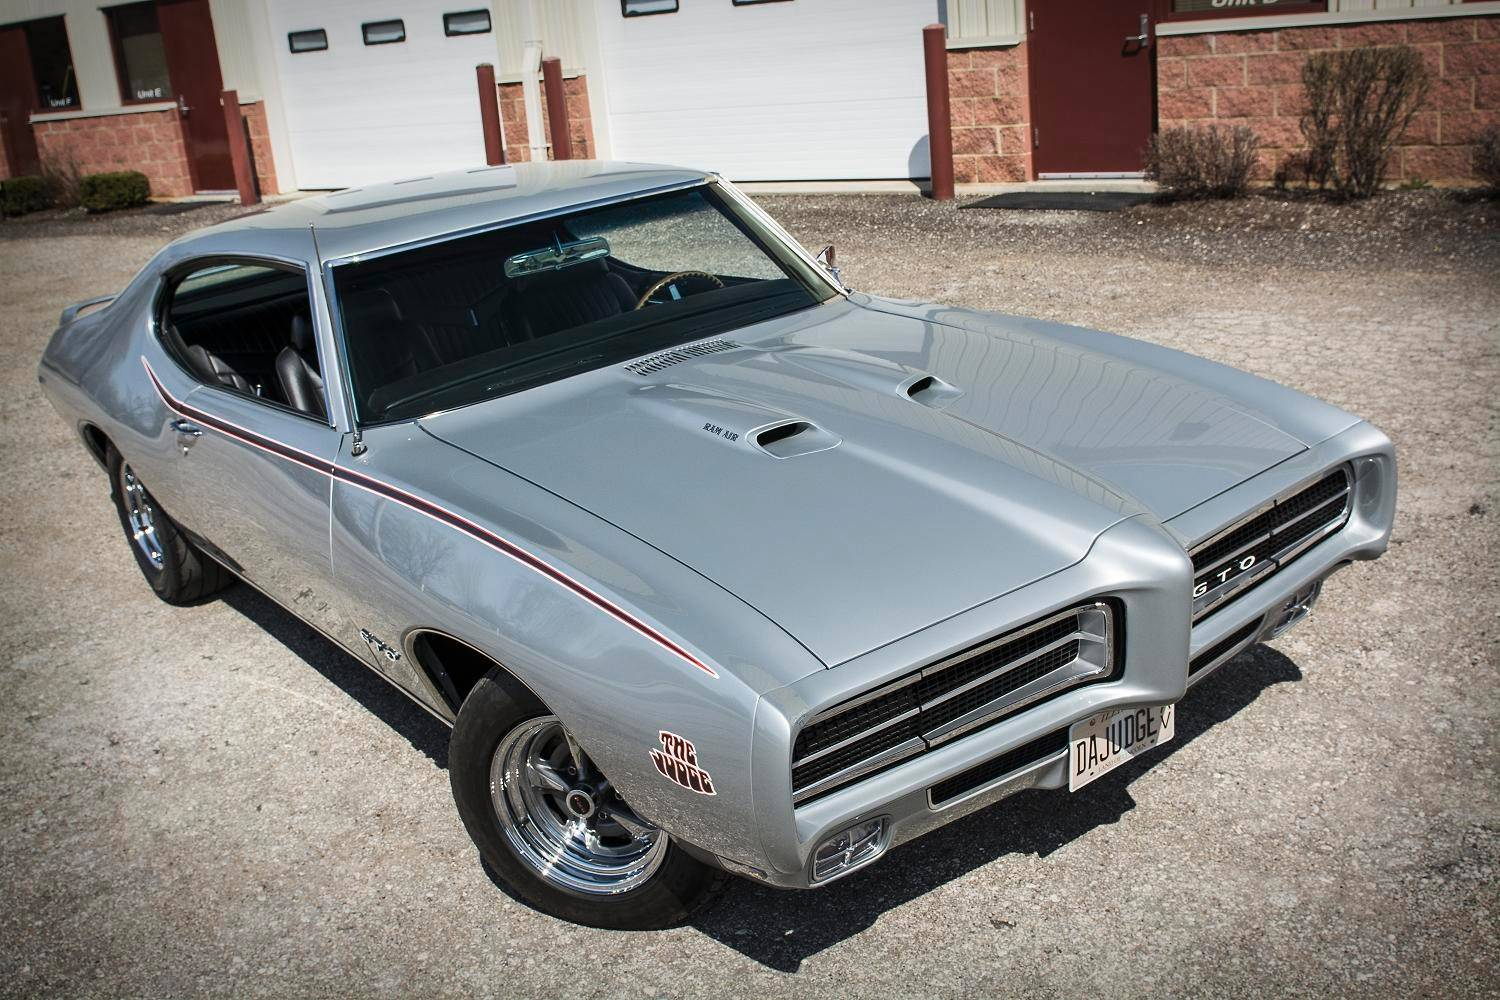 1969 Pontiac GTO, The Judge